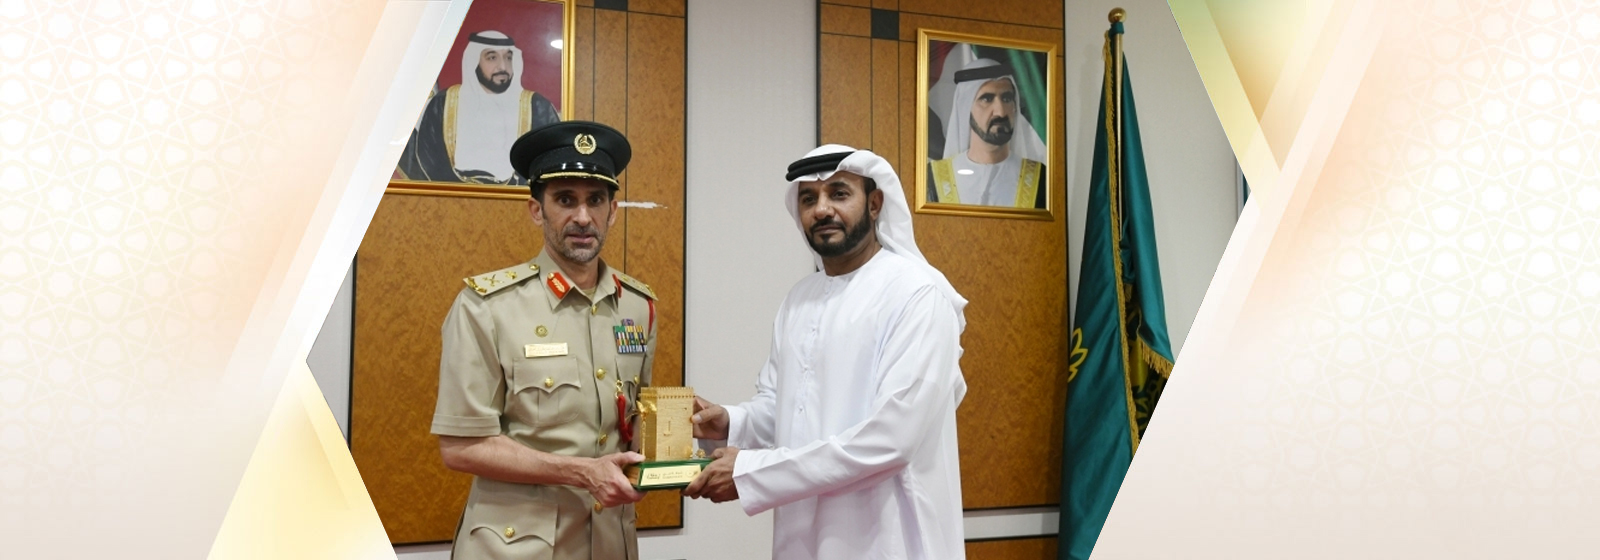 The Director-General of the National Emergency and Crisis and Disasters Management Authority discusses crisis management with Dubai Police at Expo2020